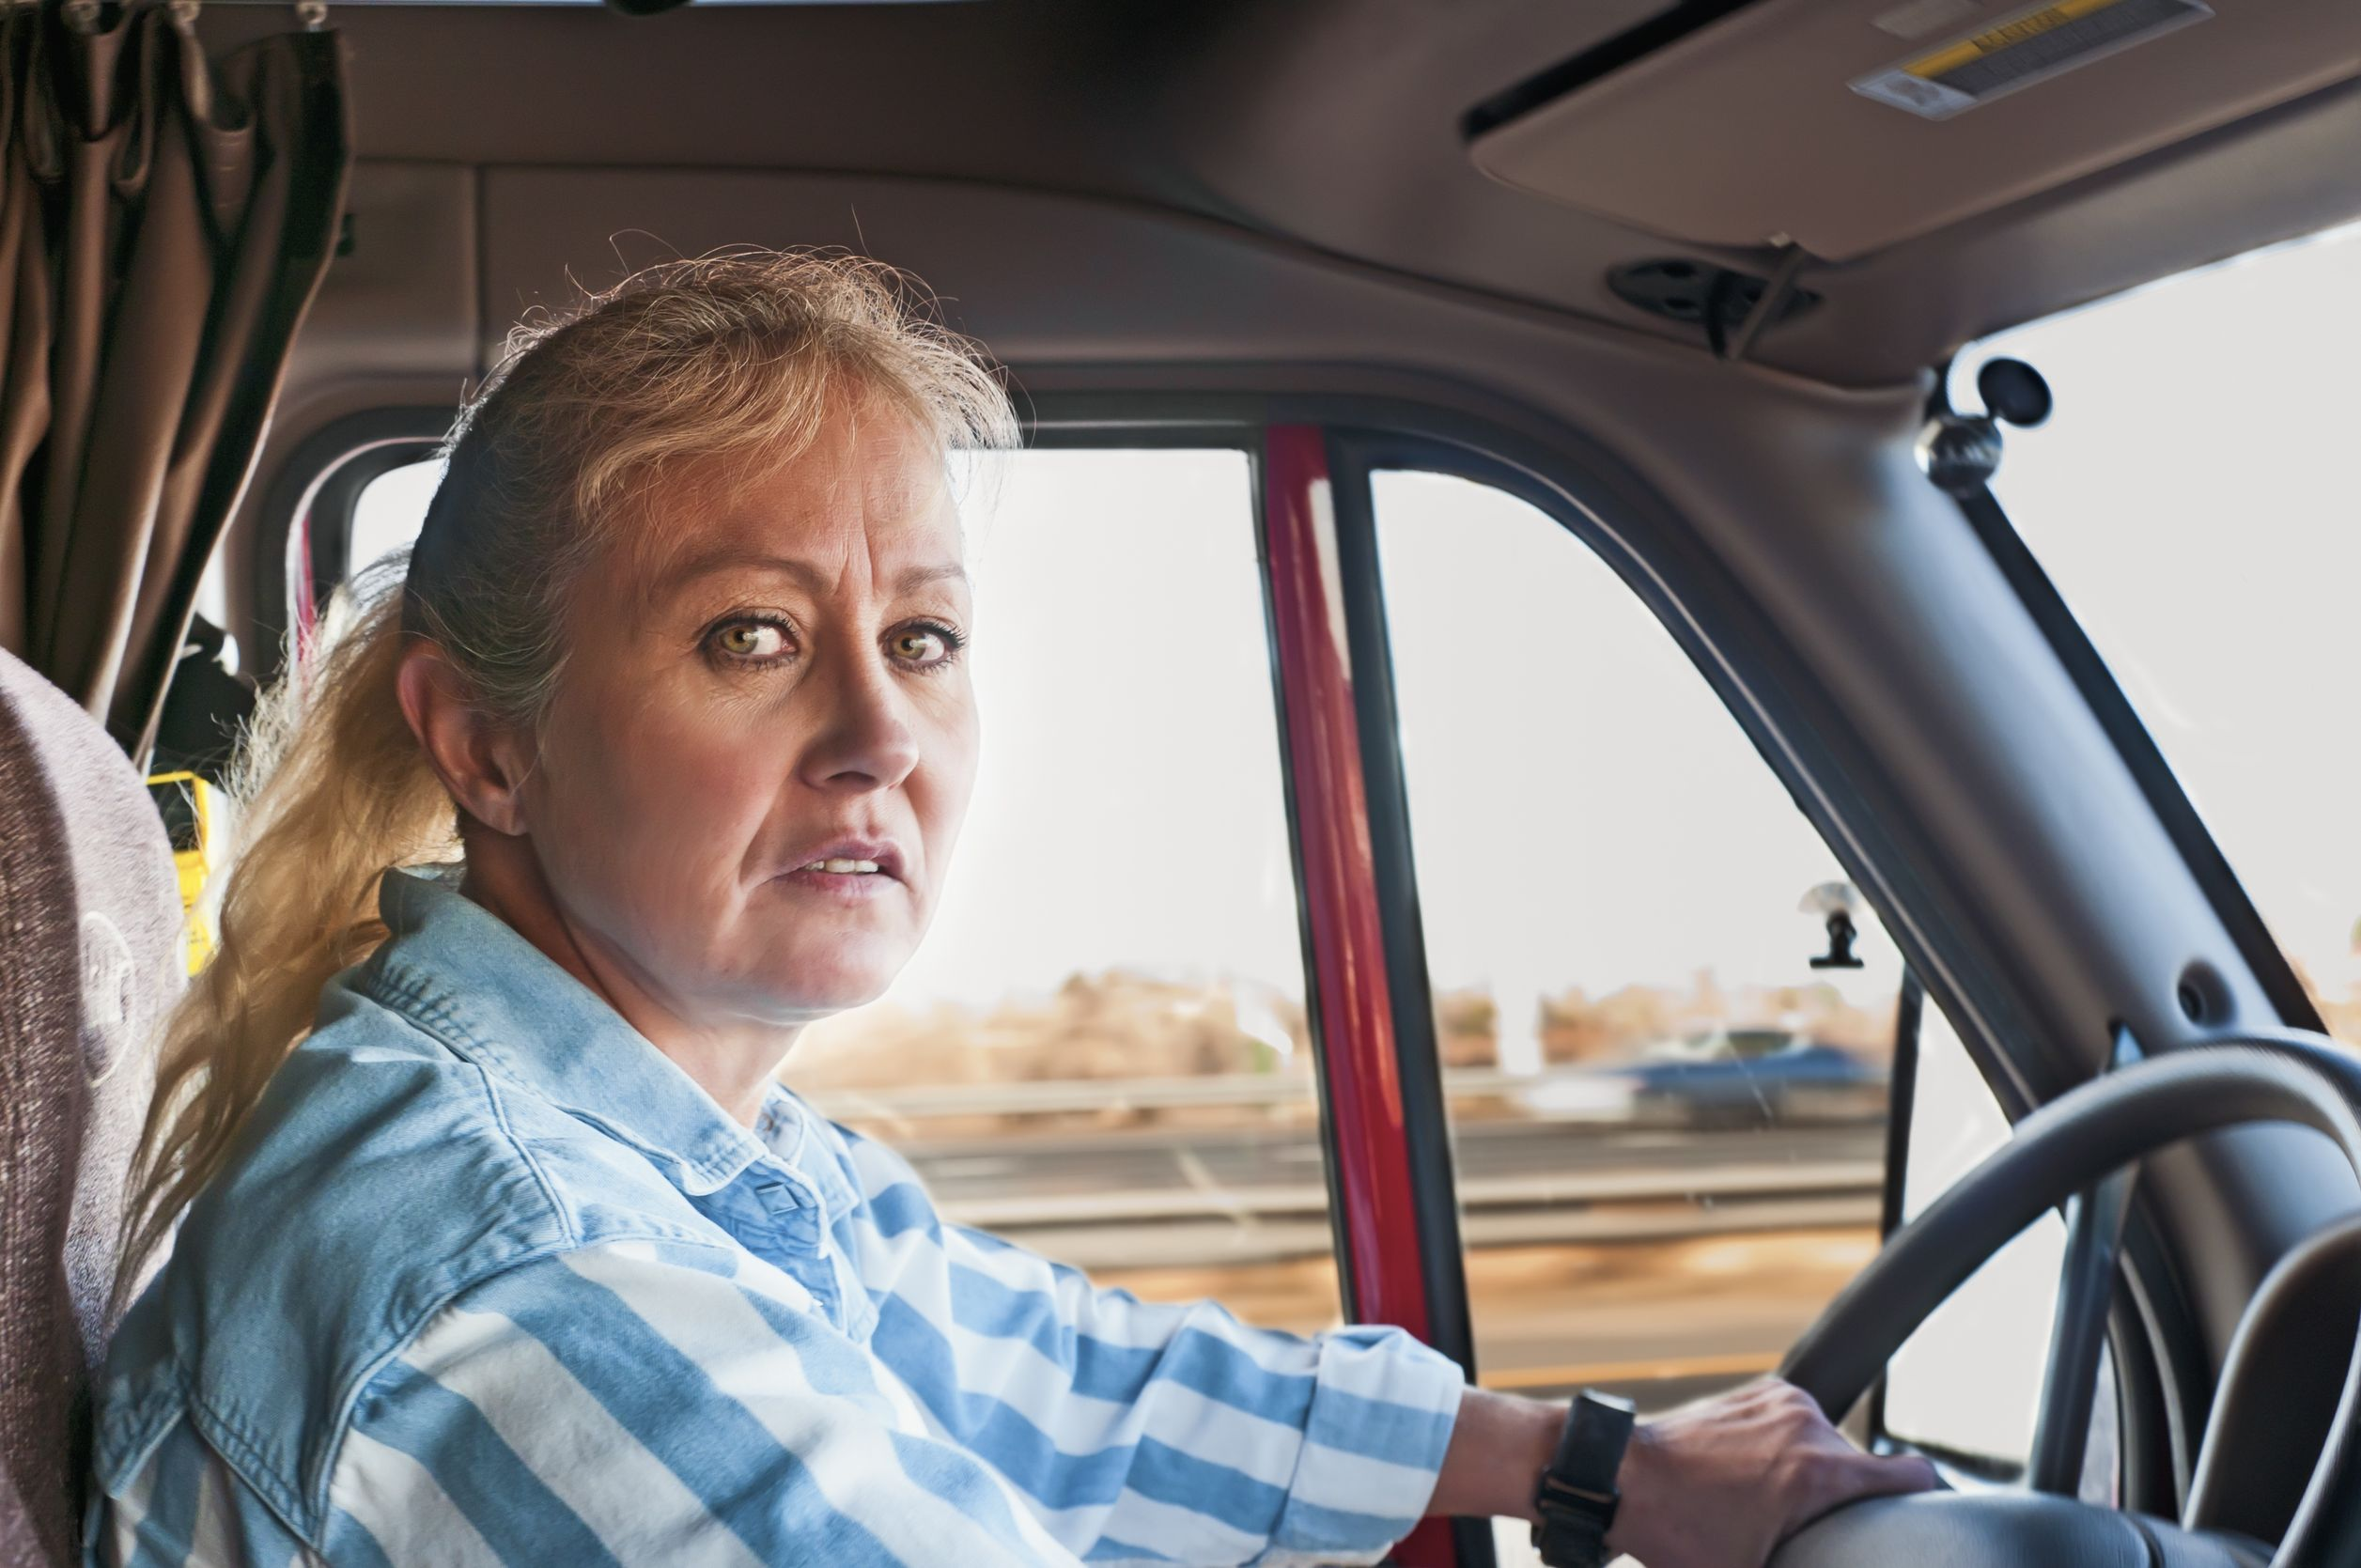 Improve Job Prospects: For Those Who Want To Know More About CDL Training Programs